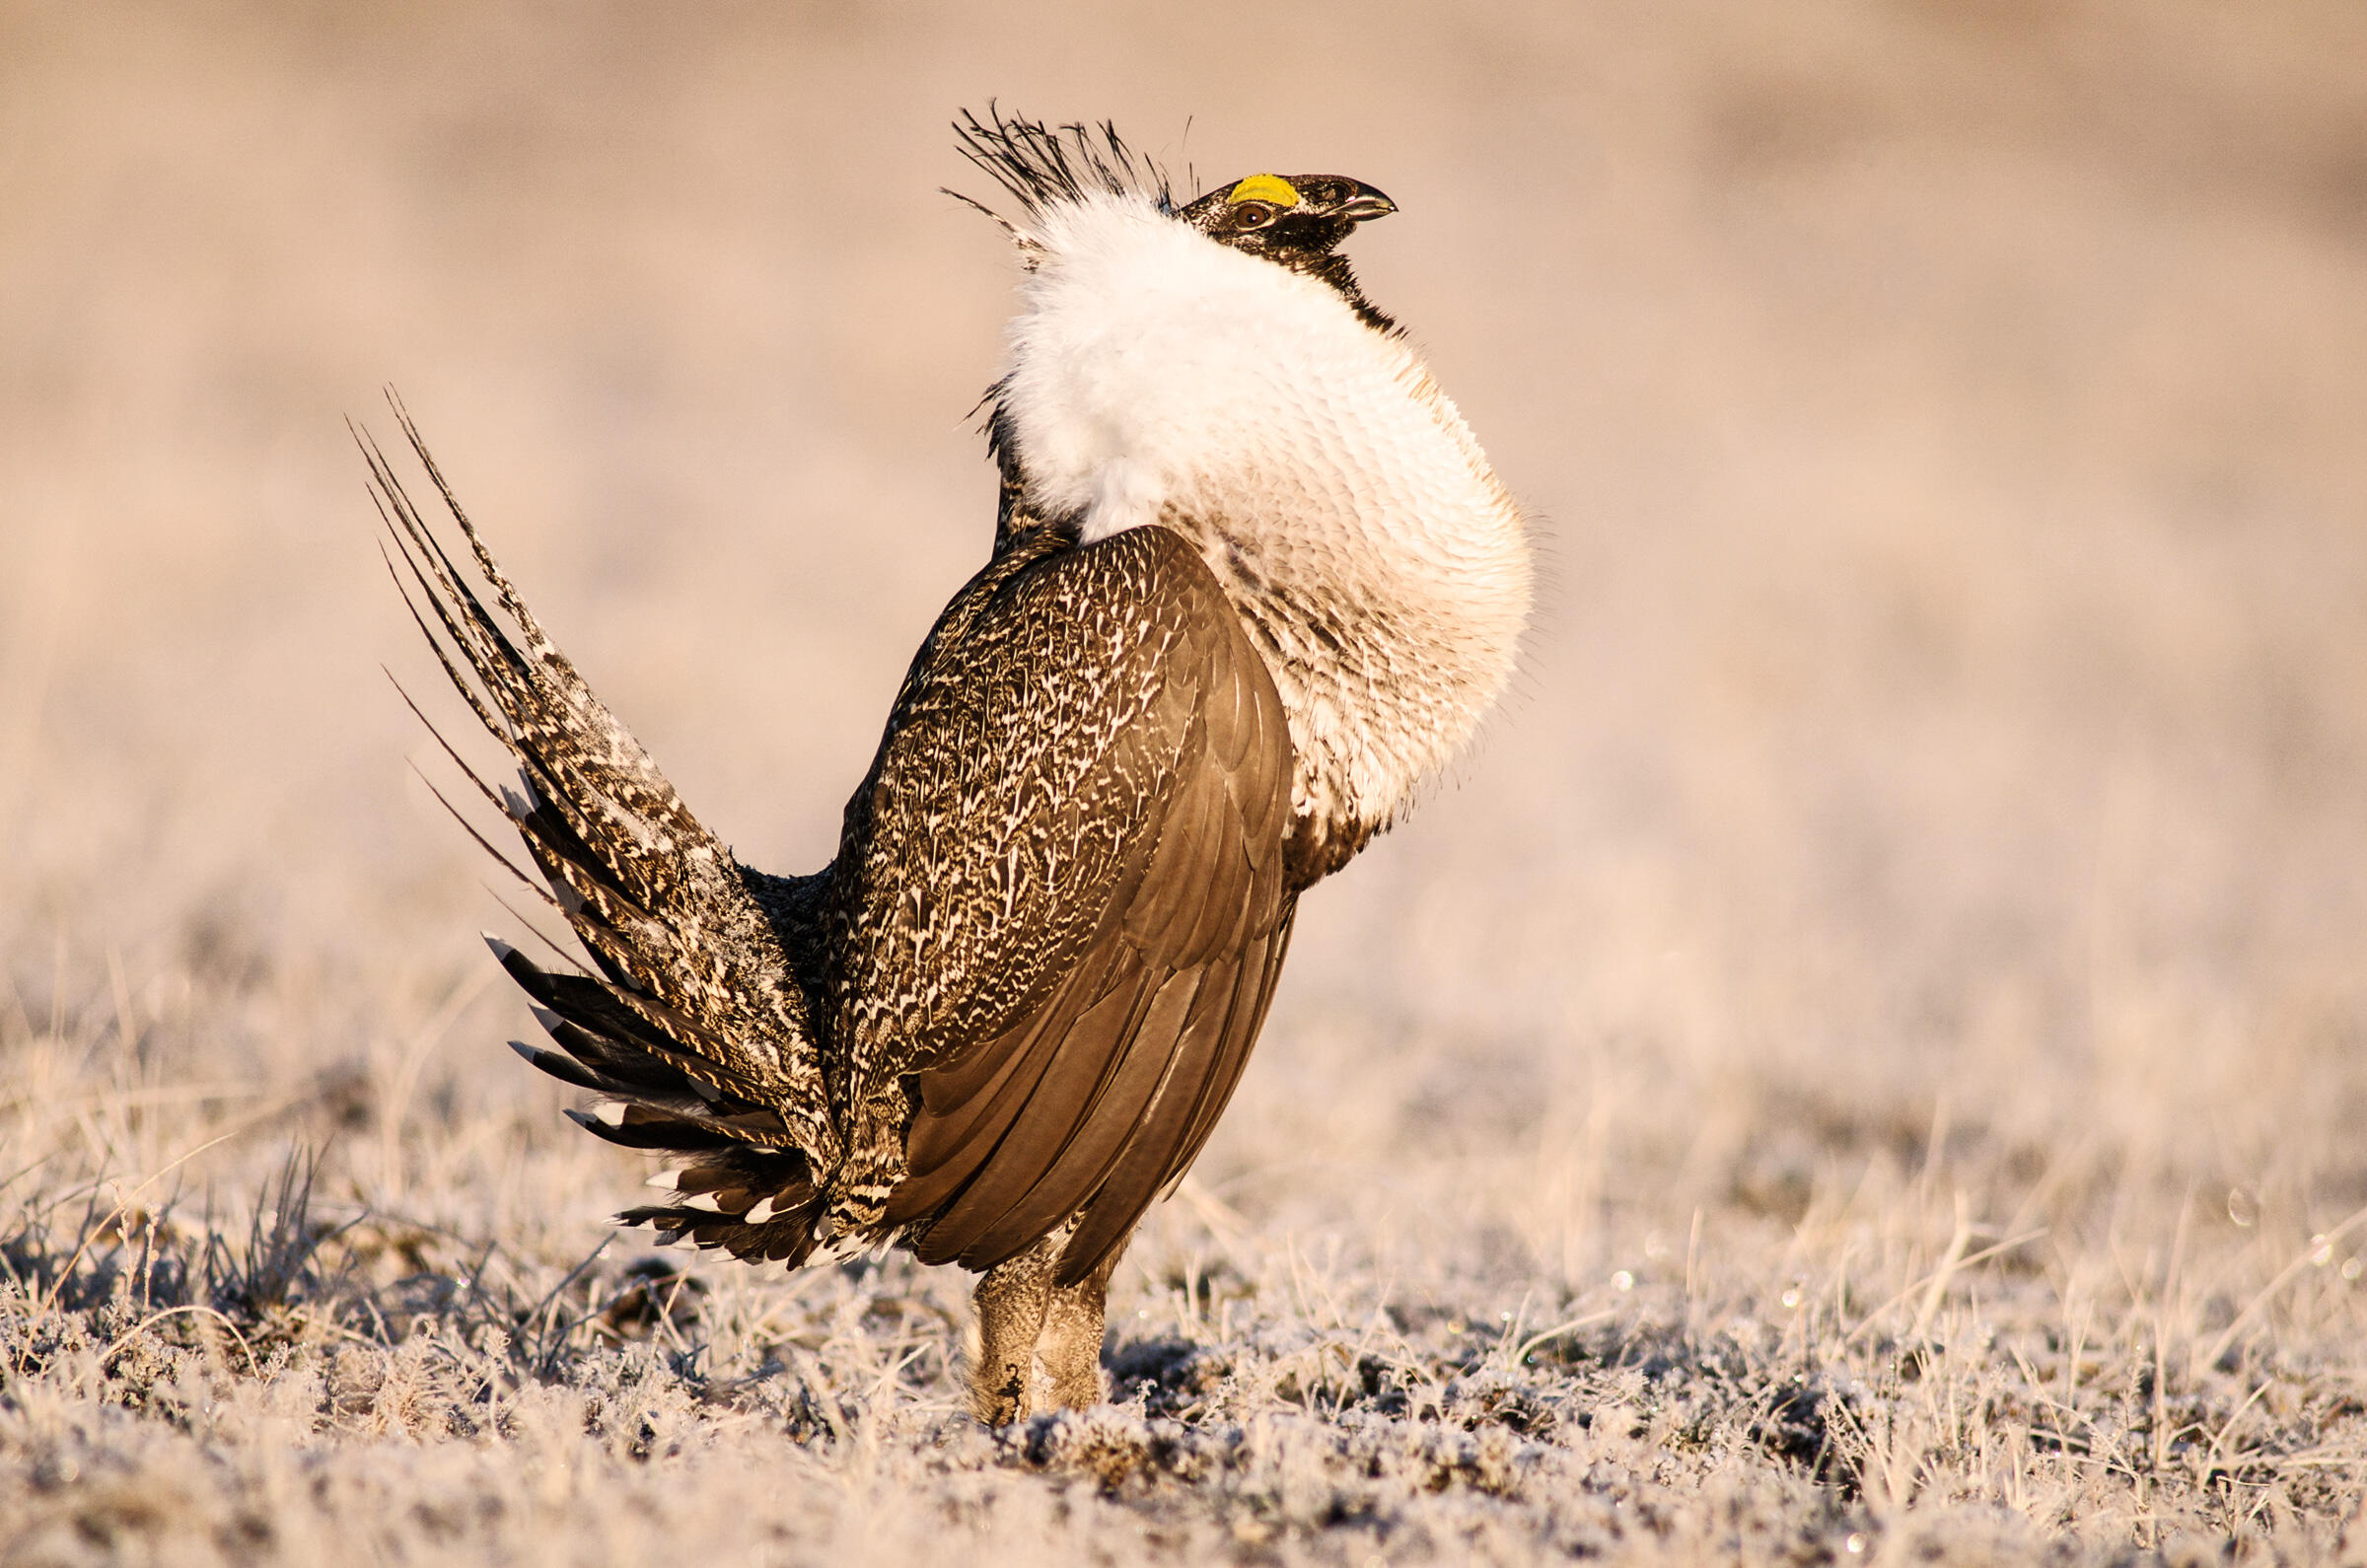 A Greater Sage-grouse male displays for the attention of females on a frosty lek. Pinedale, Wyoming. Dave Showalter